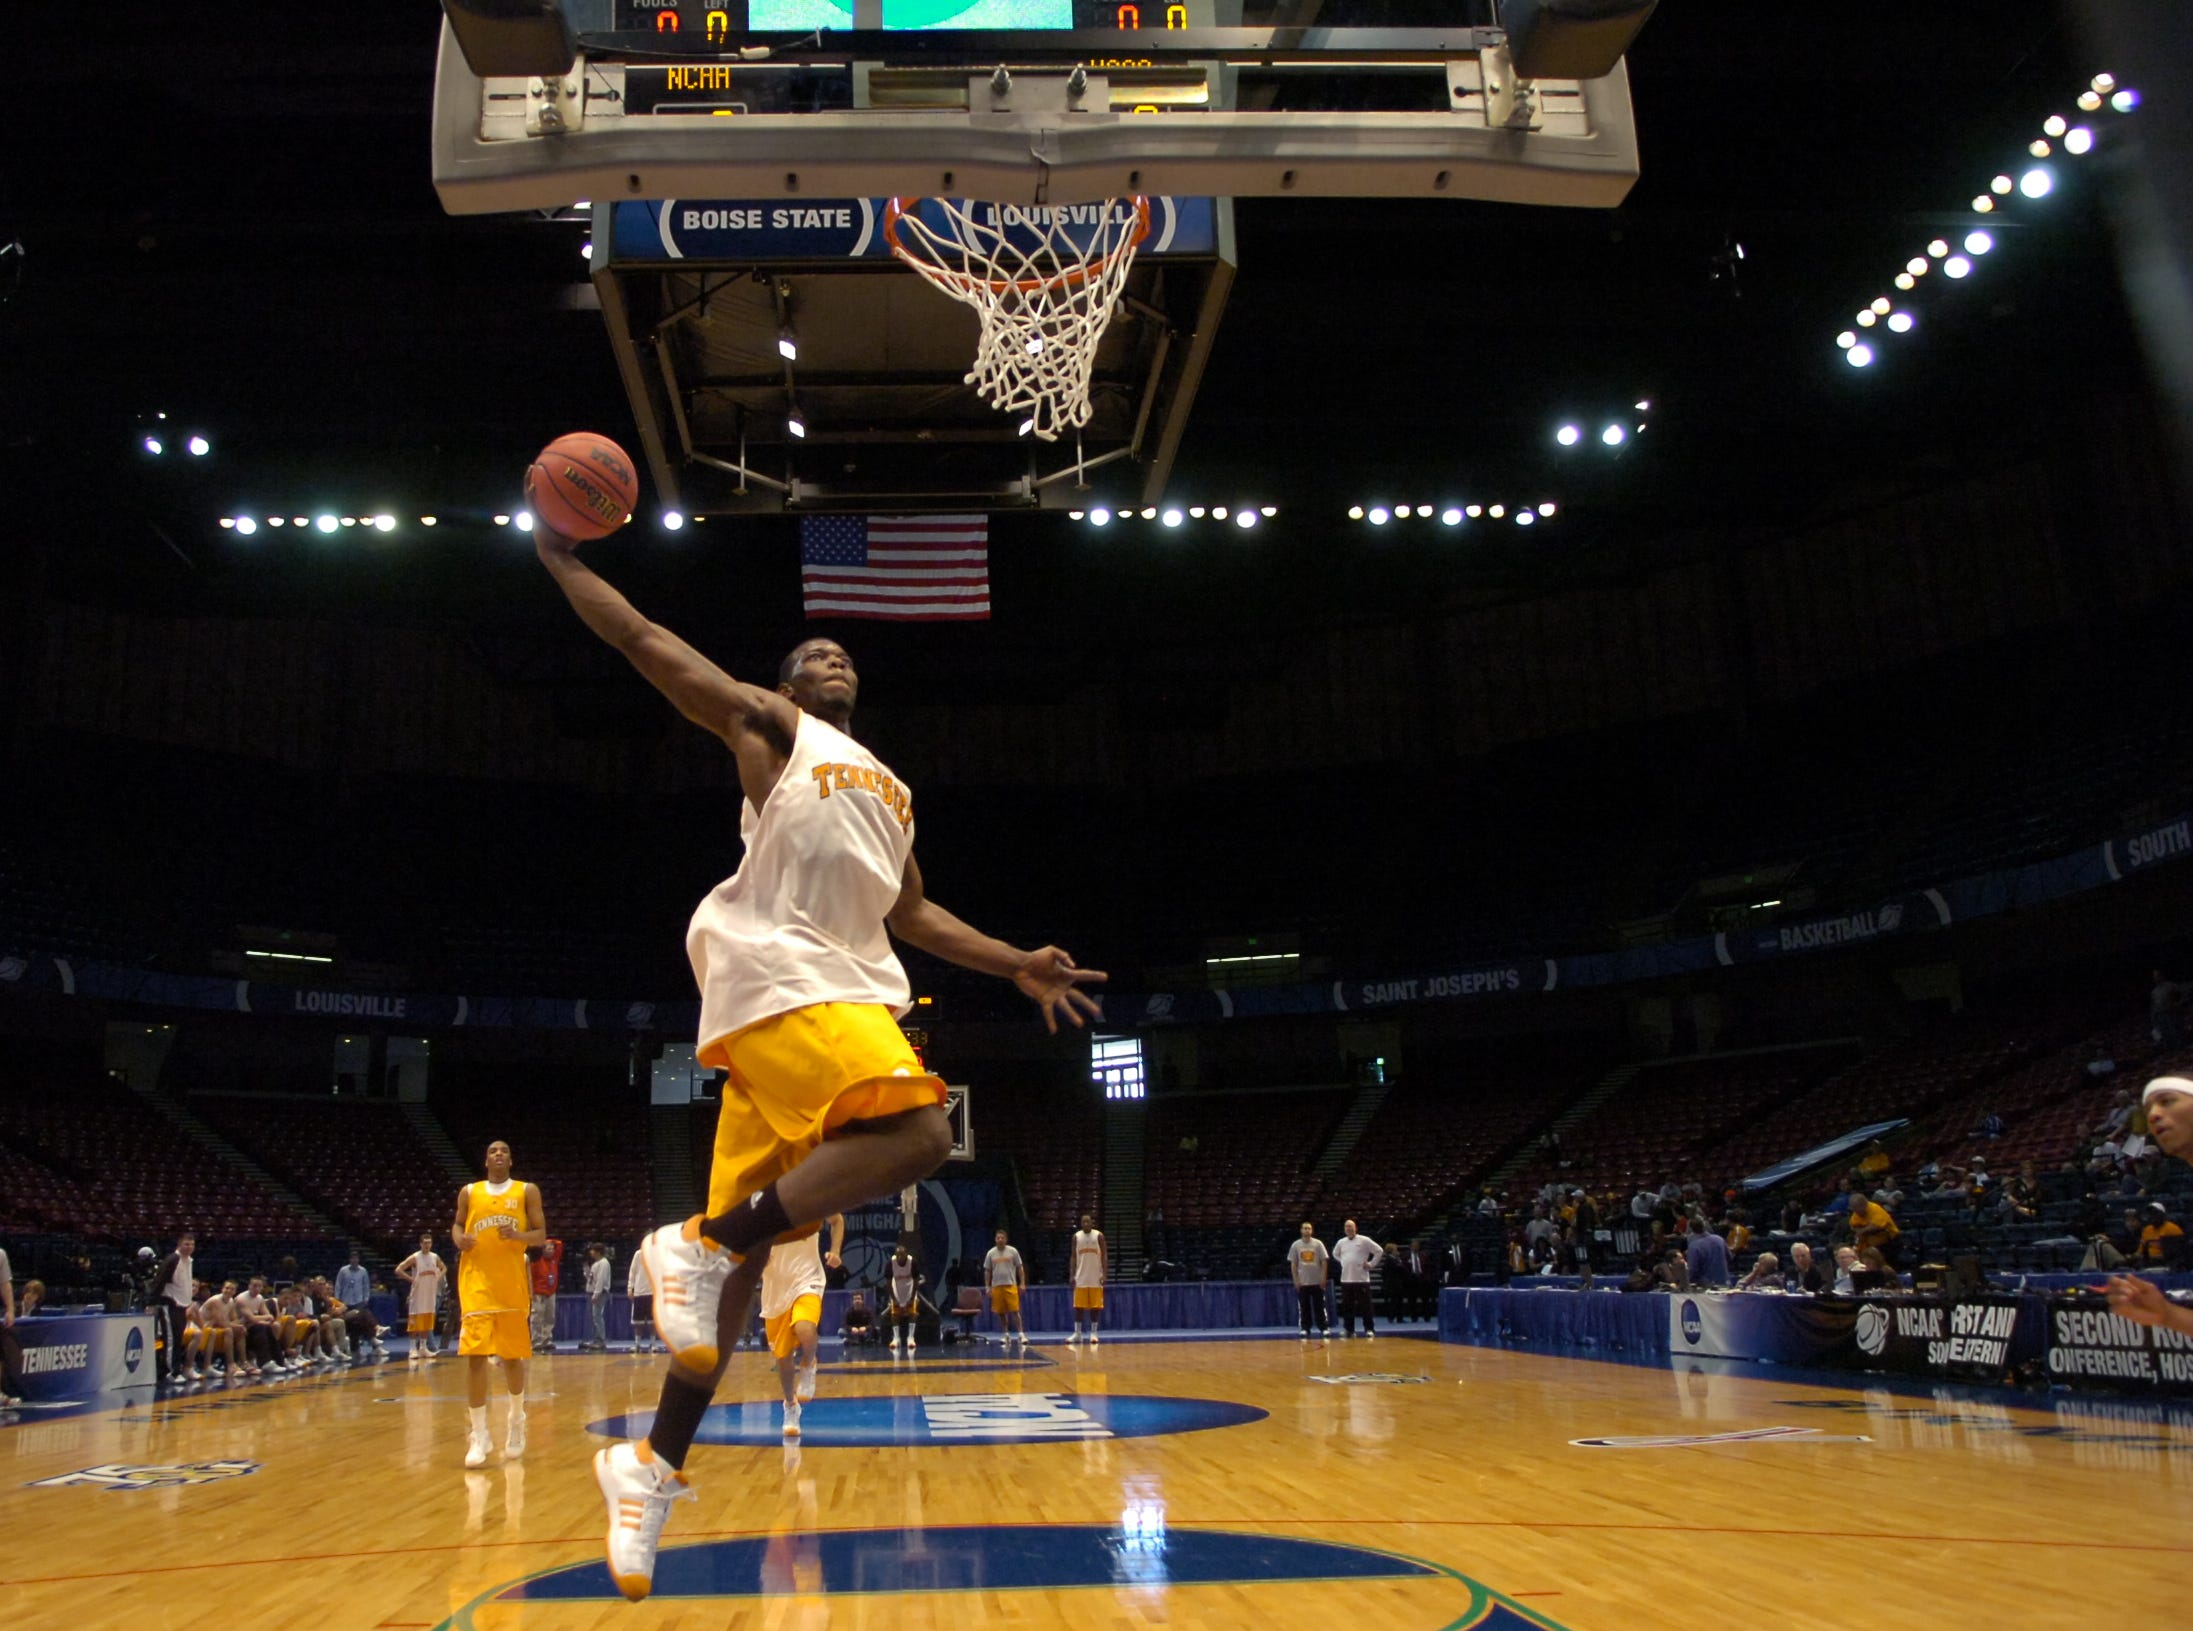 Tennessee's Duke Crews dunks the ball during a day of practice and press conferences to start the first round of the  2008 NCAA Tournament in Birmingham, Alabama on Thursday. Tennessee will face American University at 12:15EST on Friday.